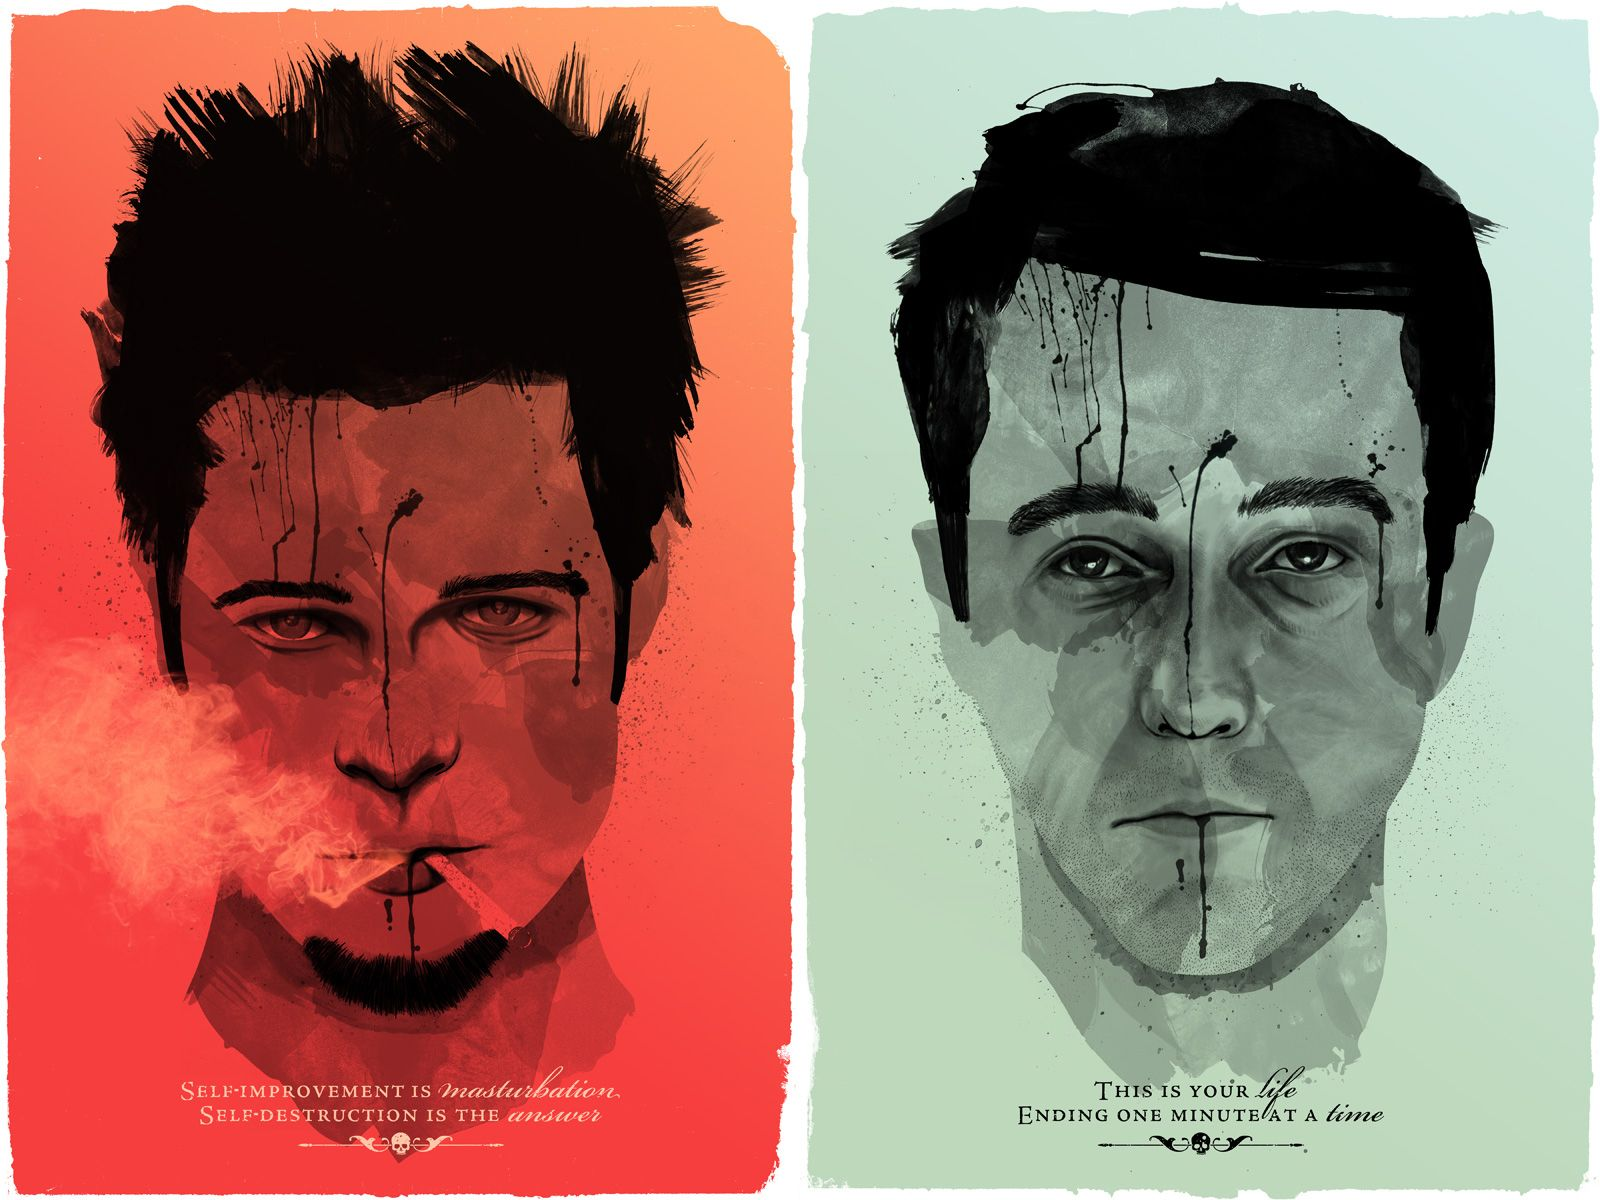 Fight Club This Would Be A Cool Print To Have In A Home Theatre Room Or Maybe The Office Fight Club Poster Movie Art Club Poster Fight club desktop wallpaper hd